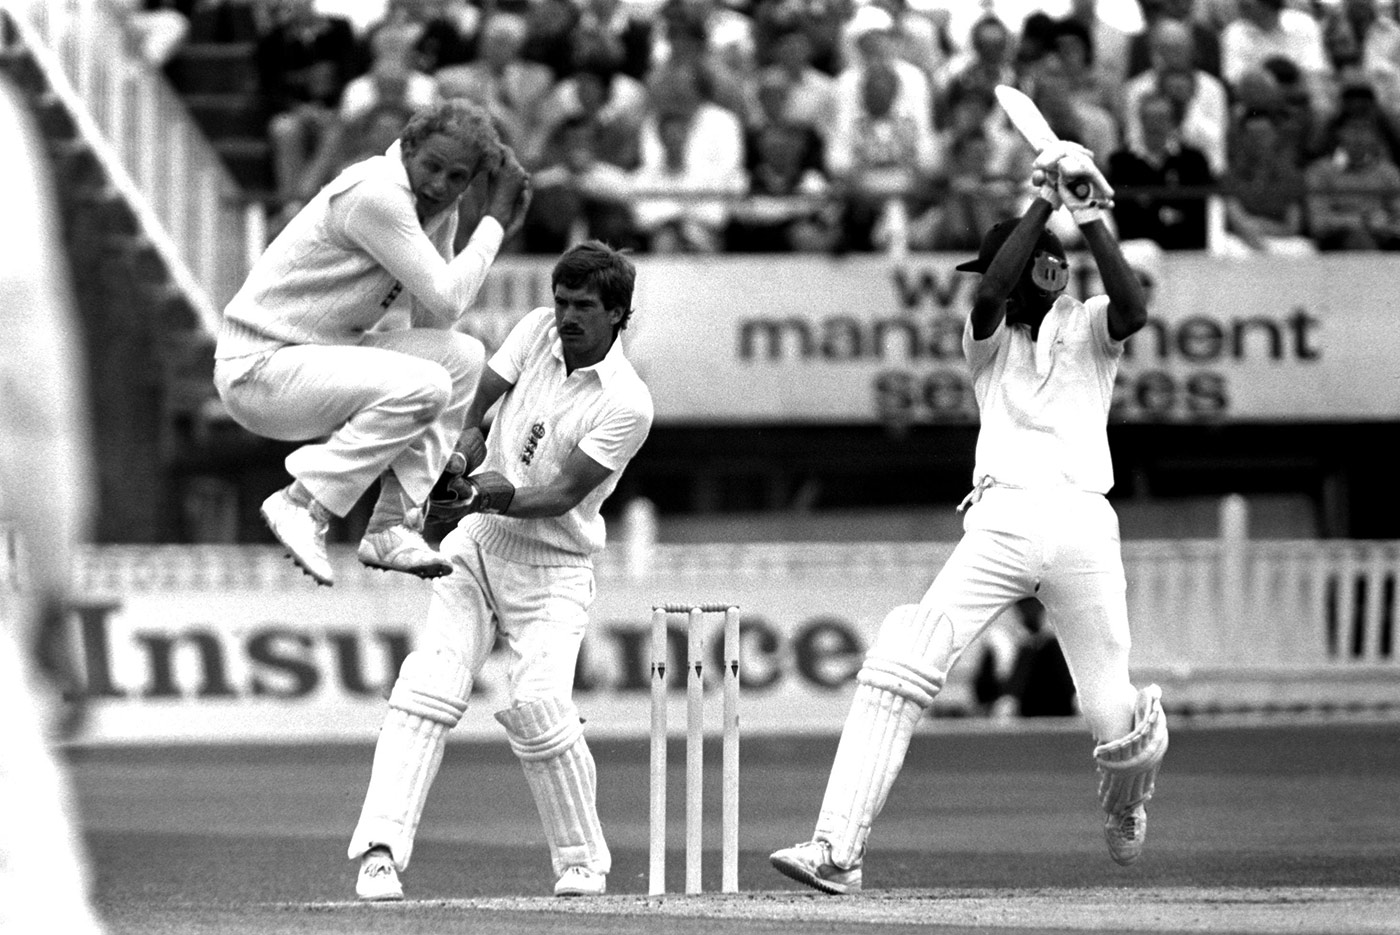 In which Azhar makes fellow stylist David Gower leap, flinching, to avoid a square cut, at Edgbaston in 1986